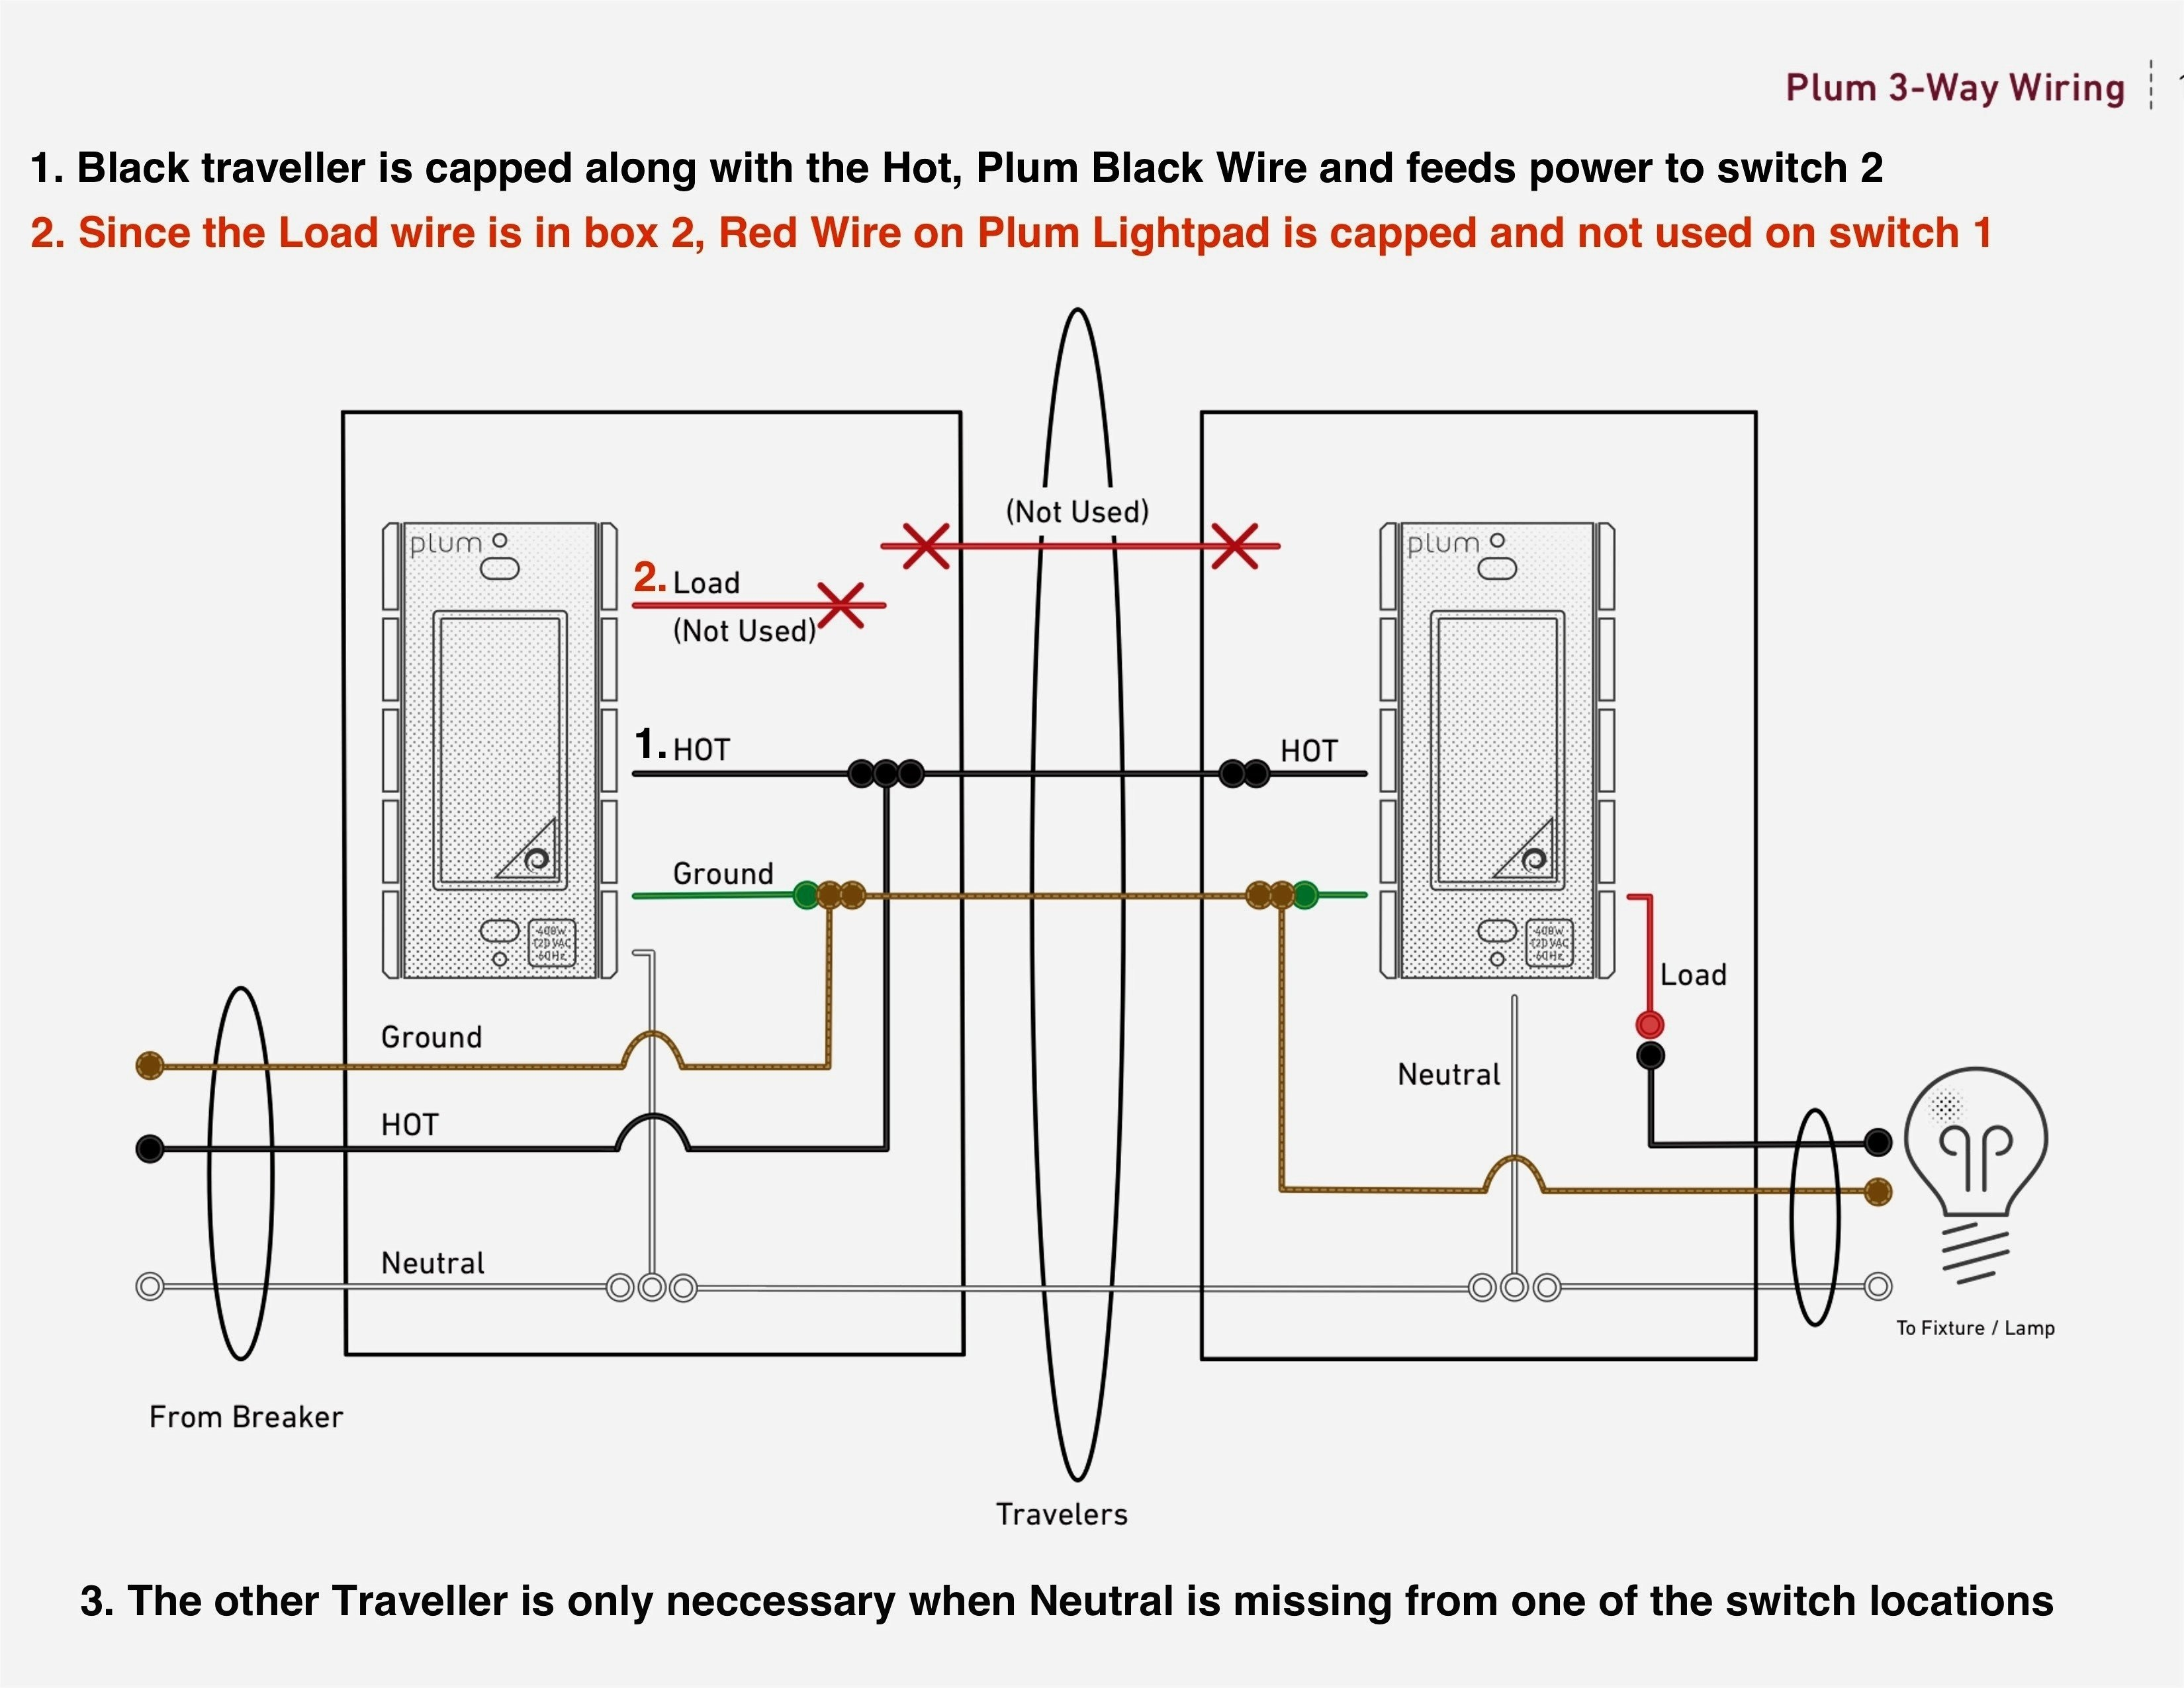 leviton switch wiring diagram Collection-Leviton 3 Way Dimmer Switch Wiring Diagram Leviton Switch Wiring Diagram Awesome Lutron 3 Way 6-k